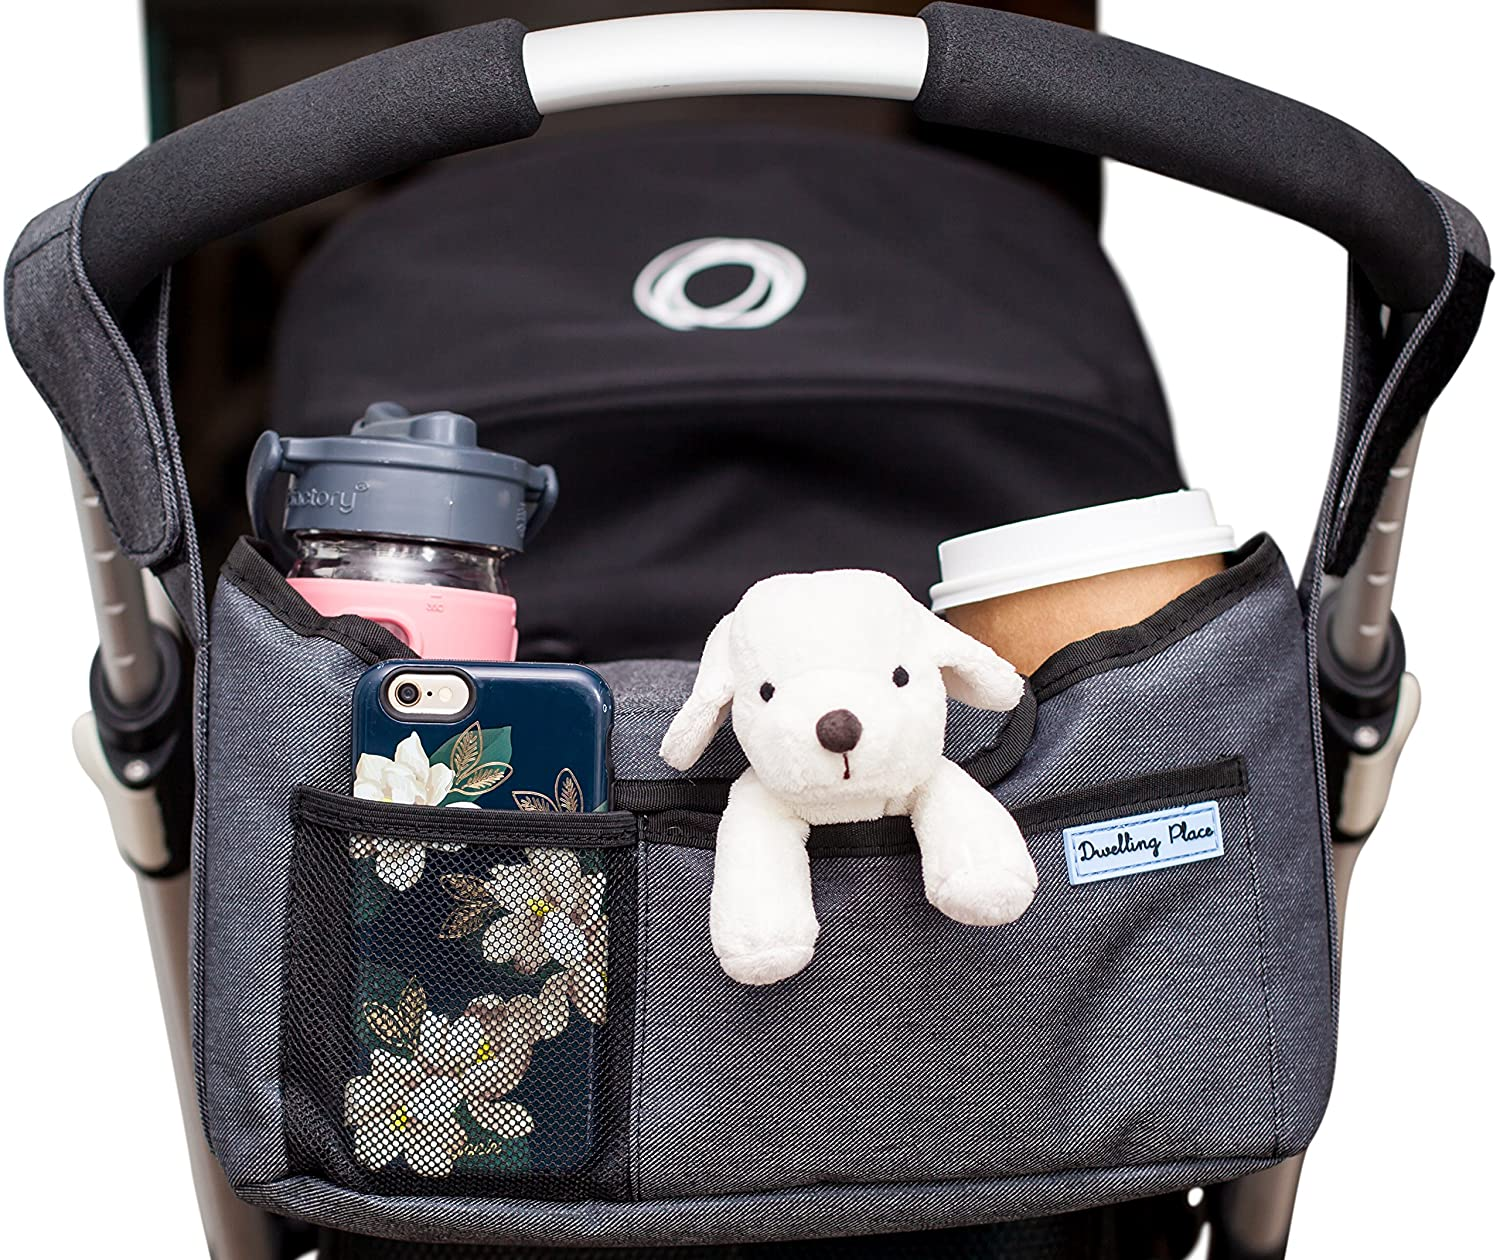 Deluxe Stroller Organizer | Universal Fit, Two Insulated Cup Holders, Lightweight Design | Lifetime 100% Satisfaction Guarantee! Dwelling Place